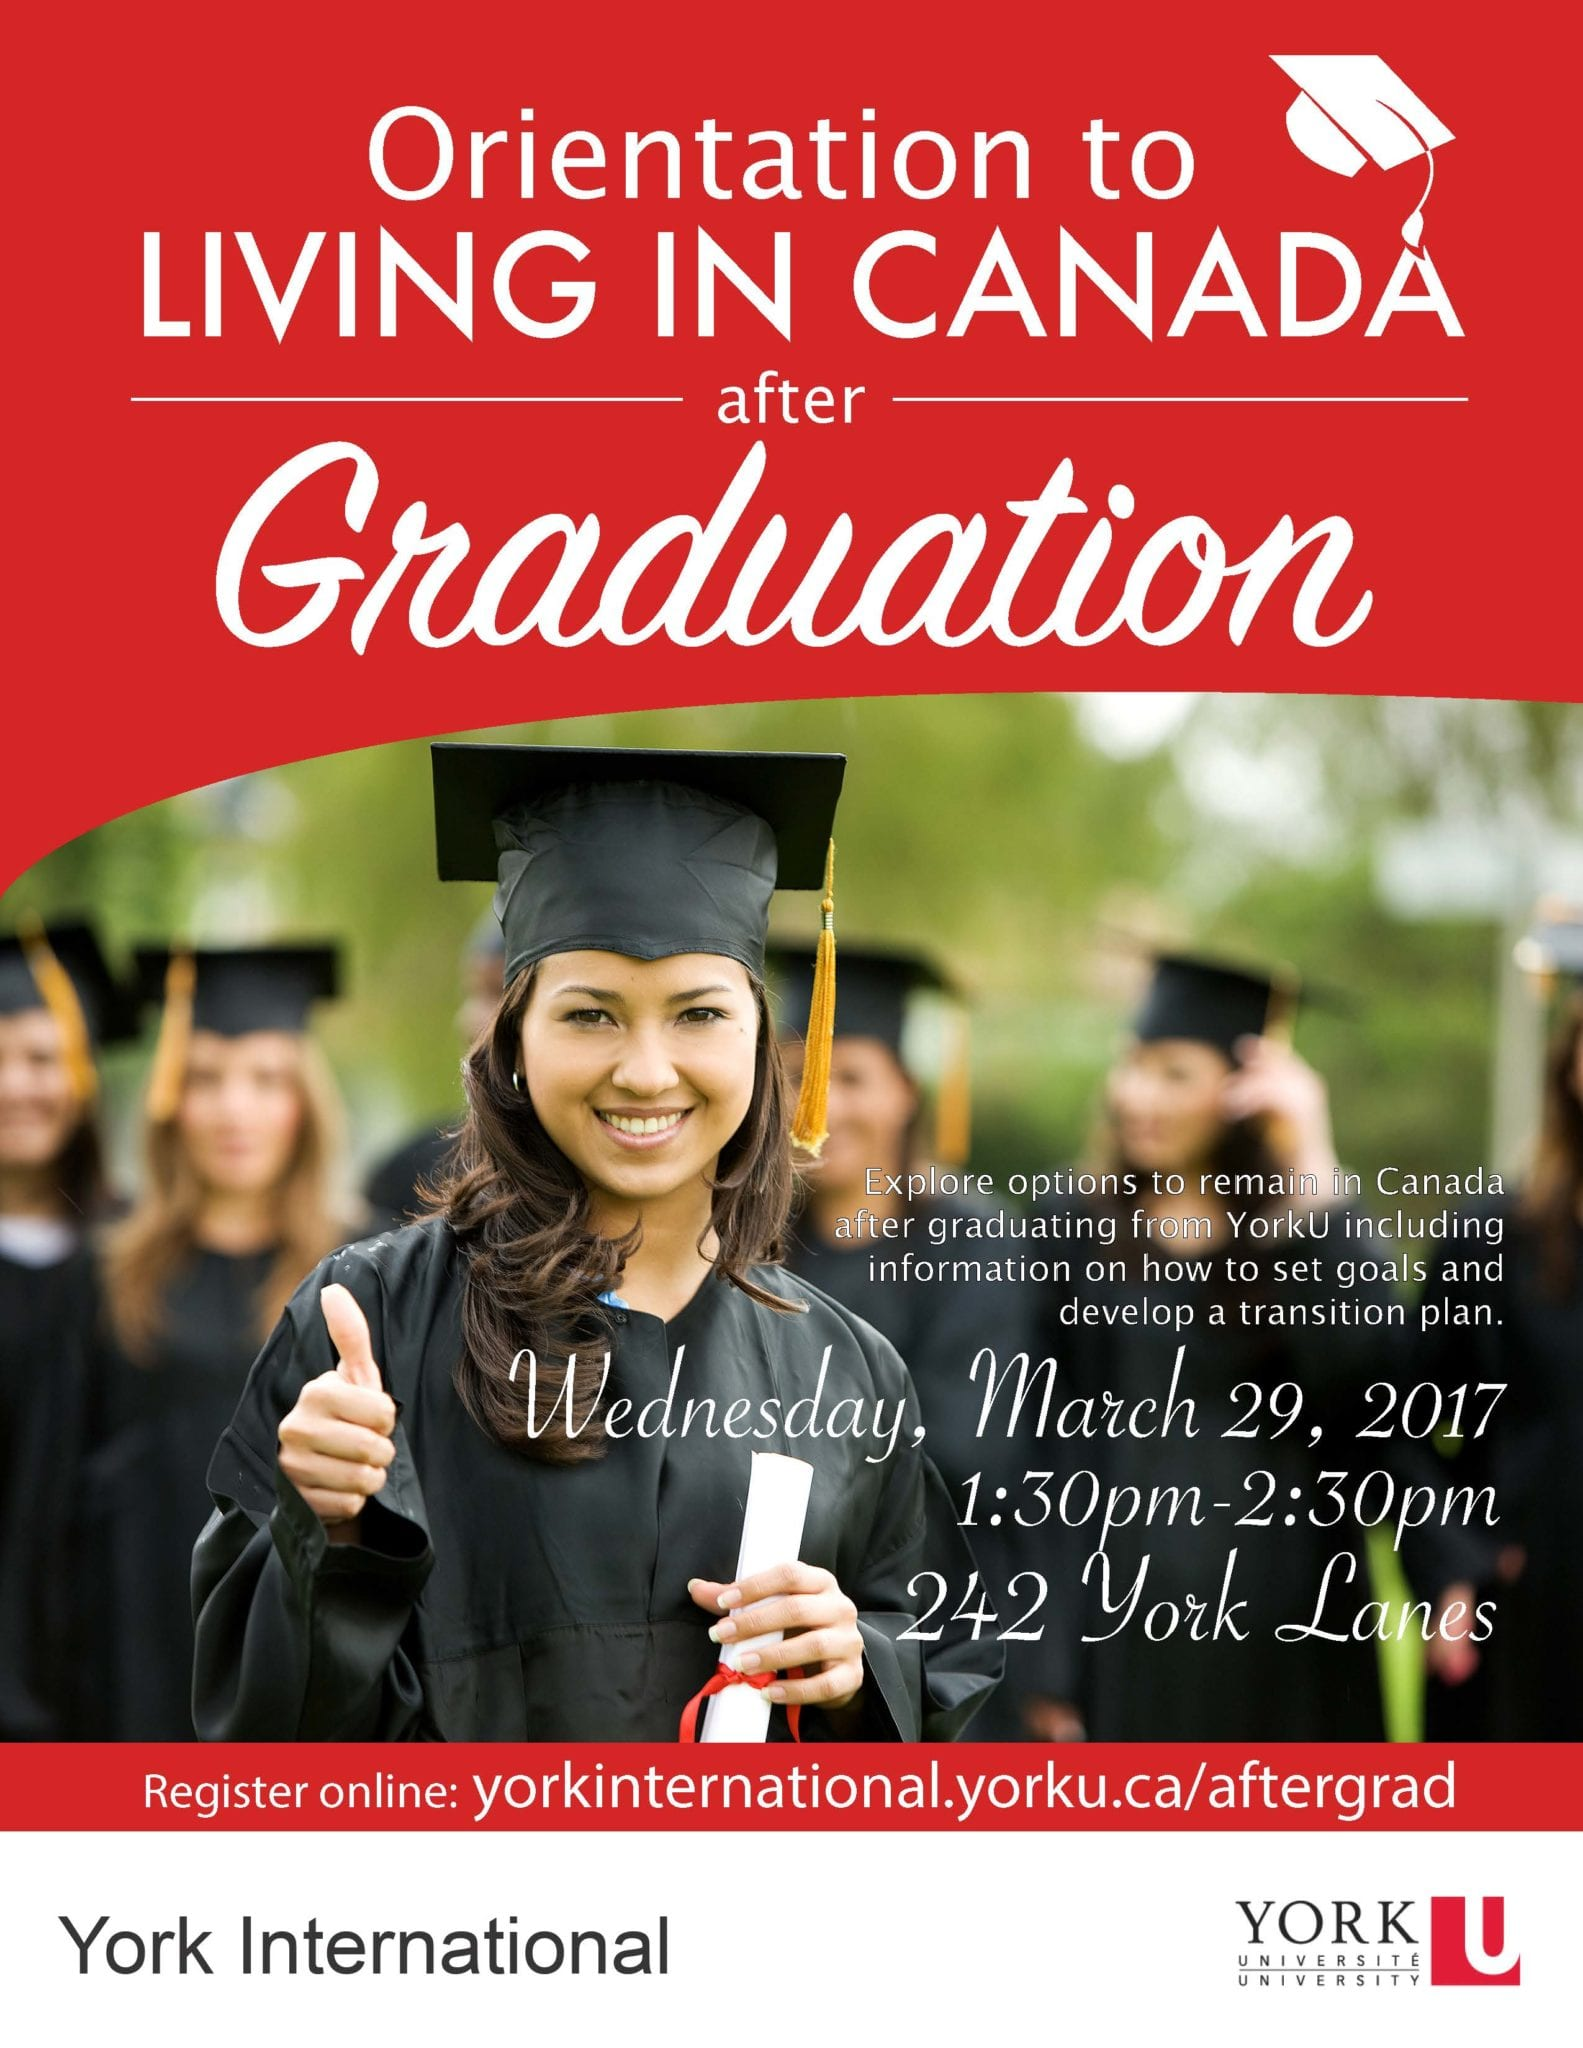 Orientation to Living in Canada after Graduation @ York Lanes, Room 242 (second floor)